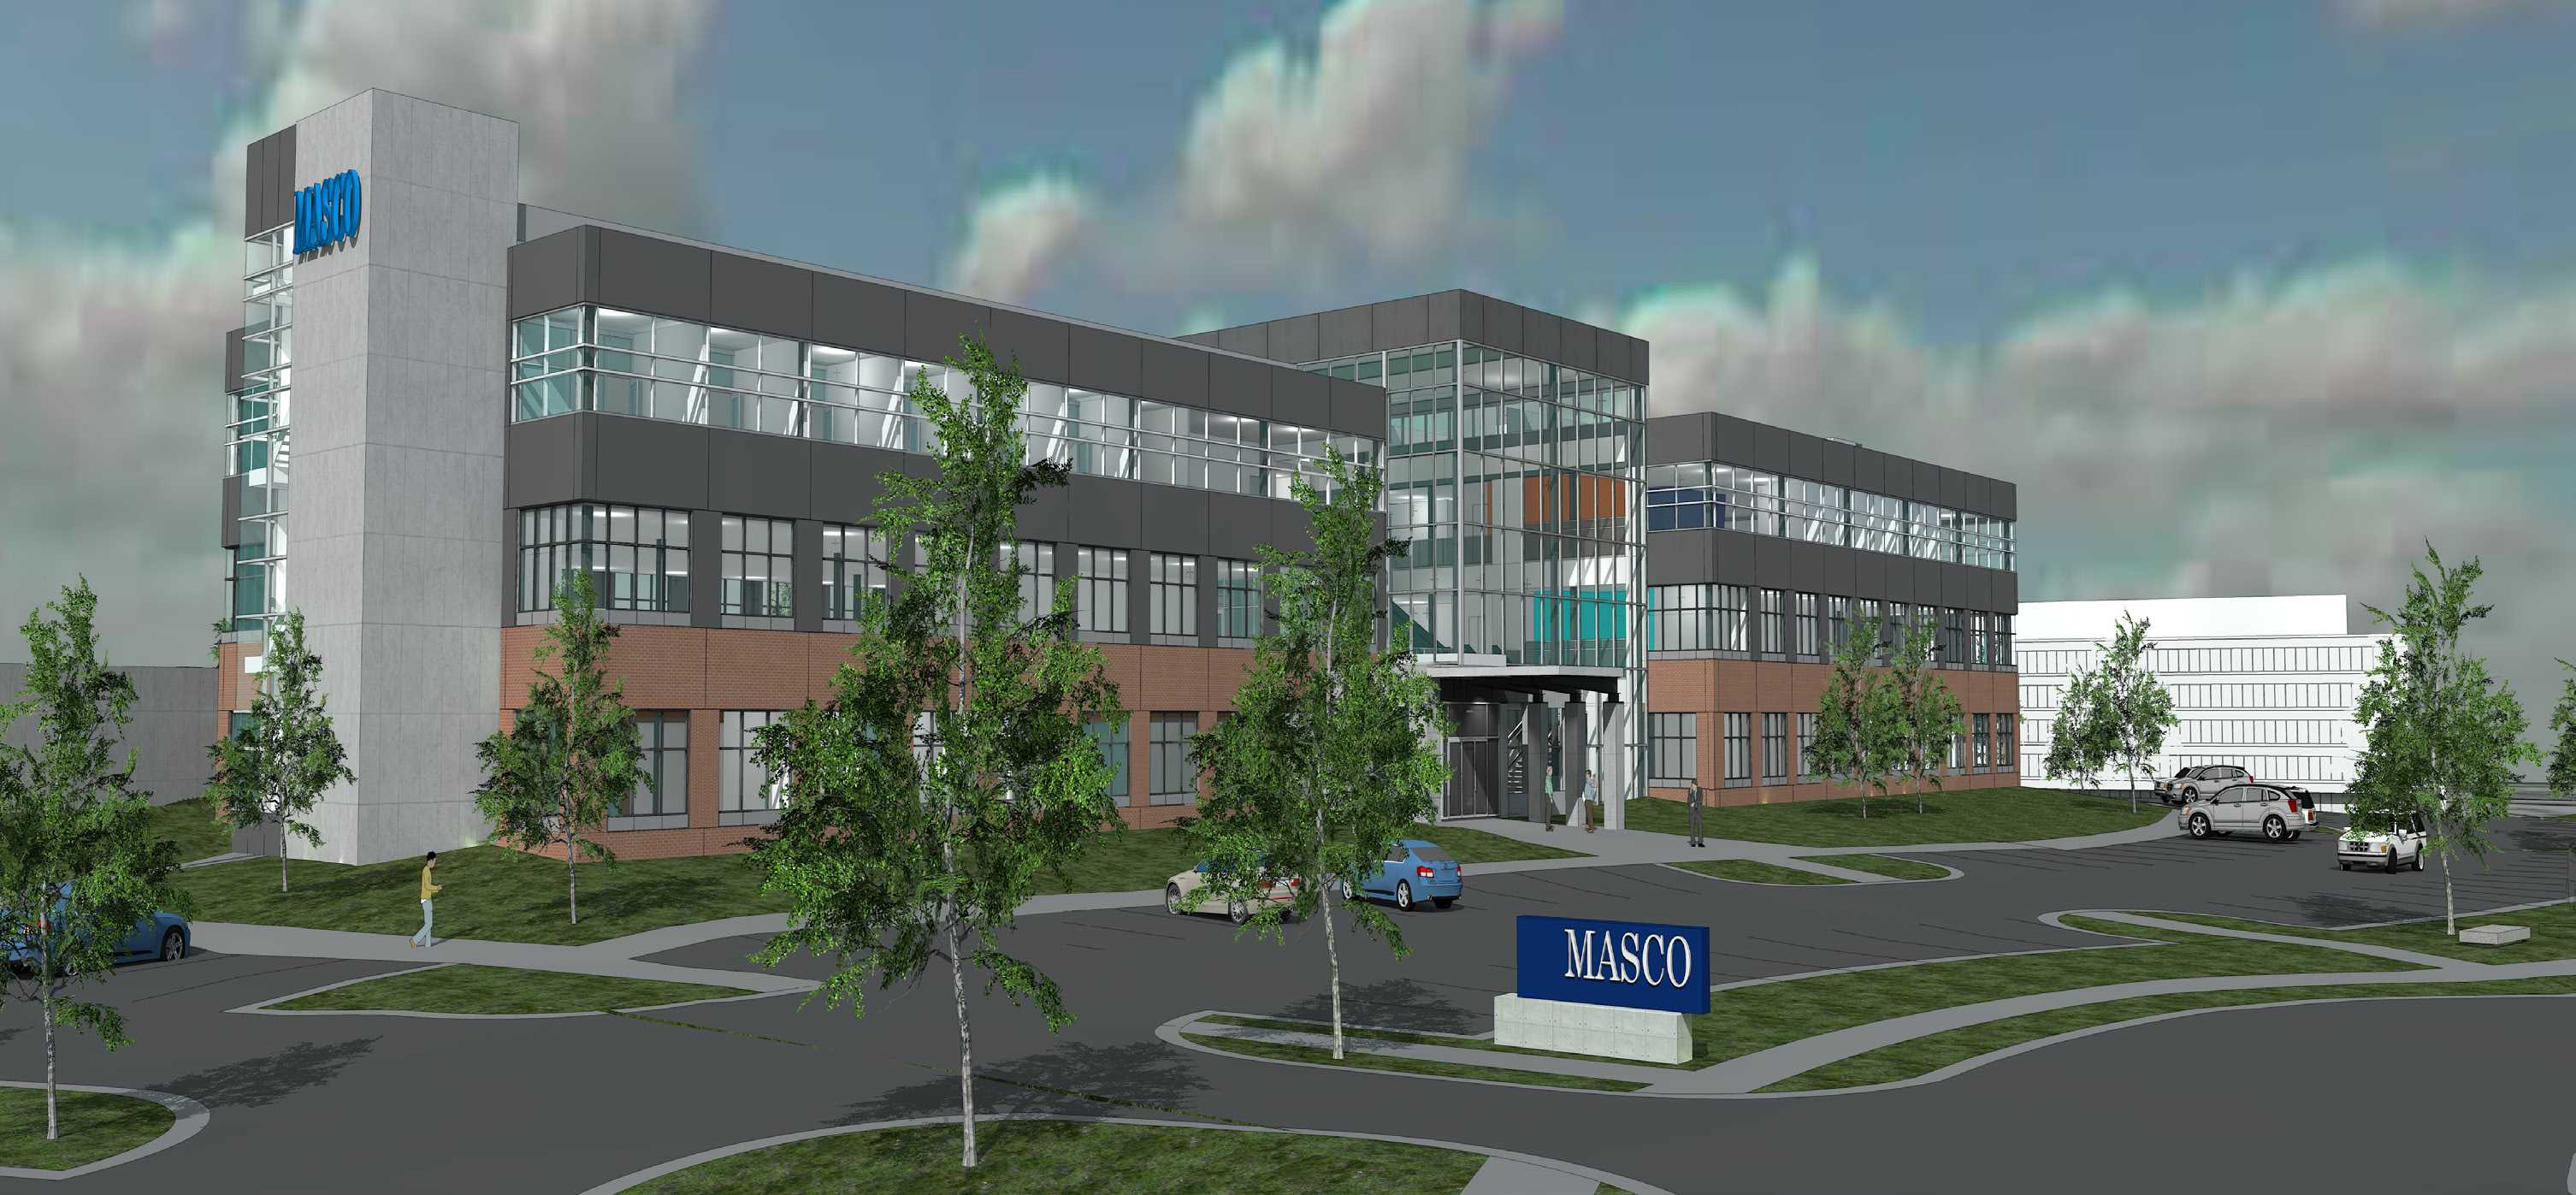 IMAGE COURTESY OF SCHOSTAK BROTHERS & COMPANY This is the digital southwest view of Masco's headquarters that will soon be on Schoolcraft grounds. Construction starts this month.